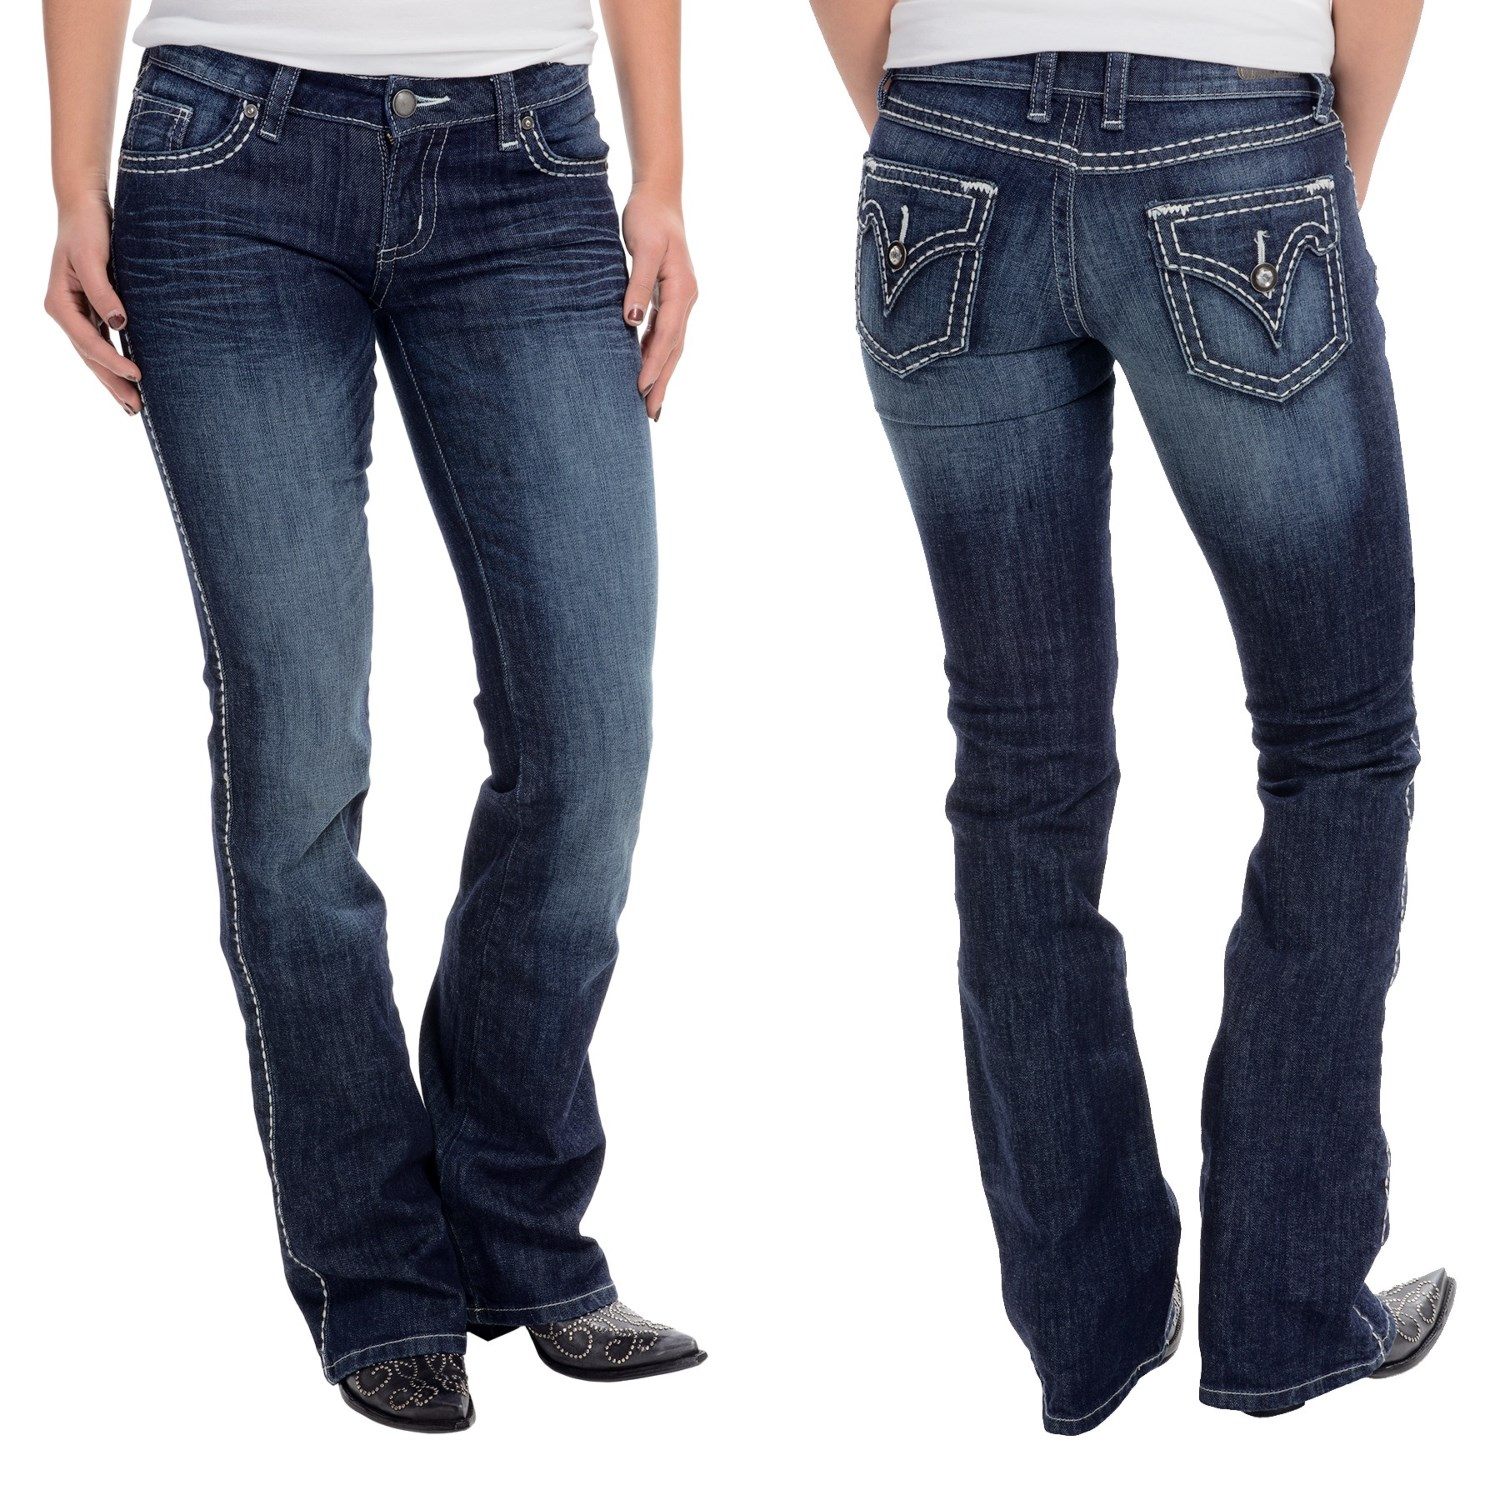 Wrangler Rock 47 Ultra Low Rise Jeans (For Women)